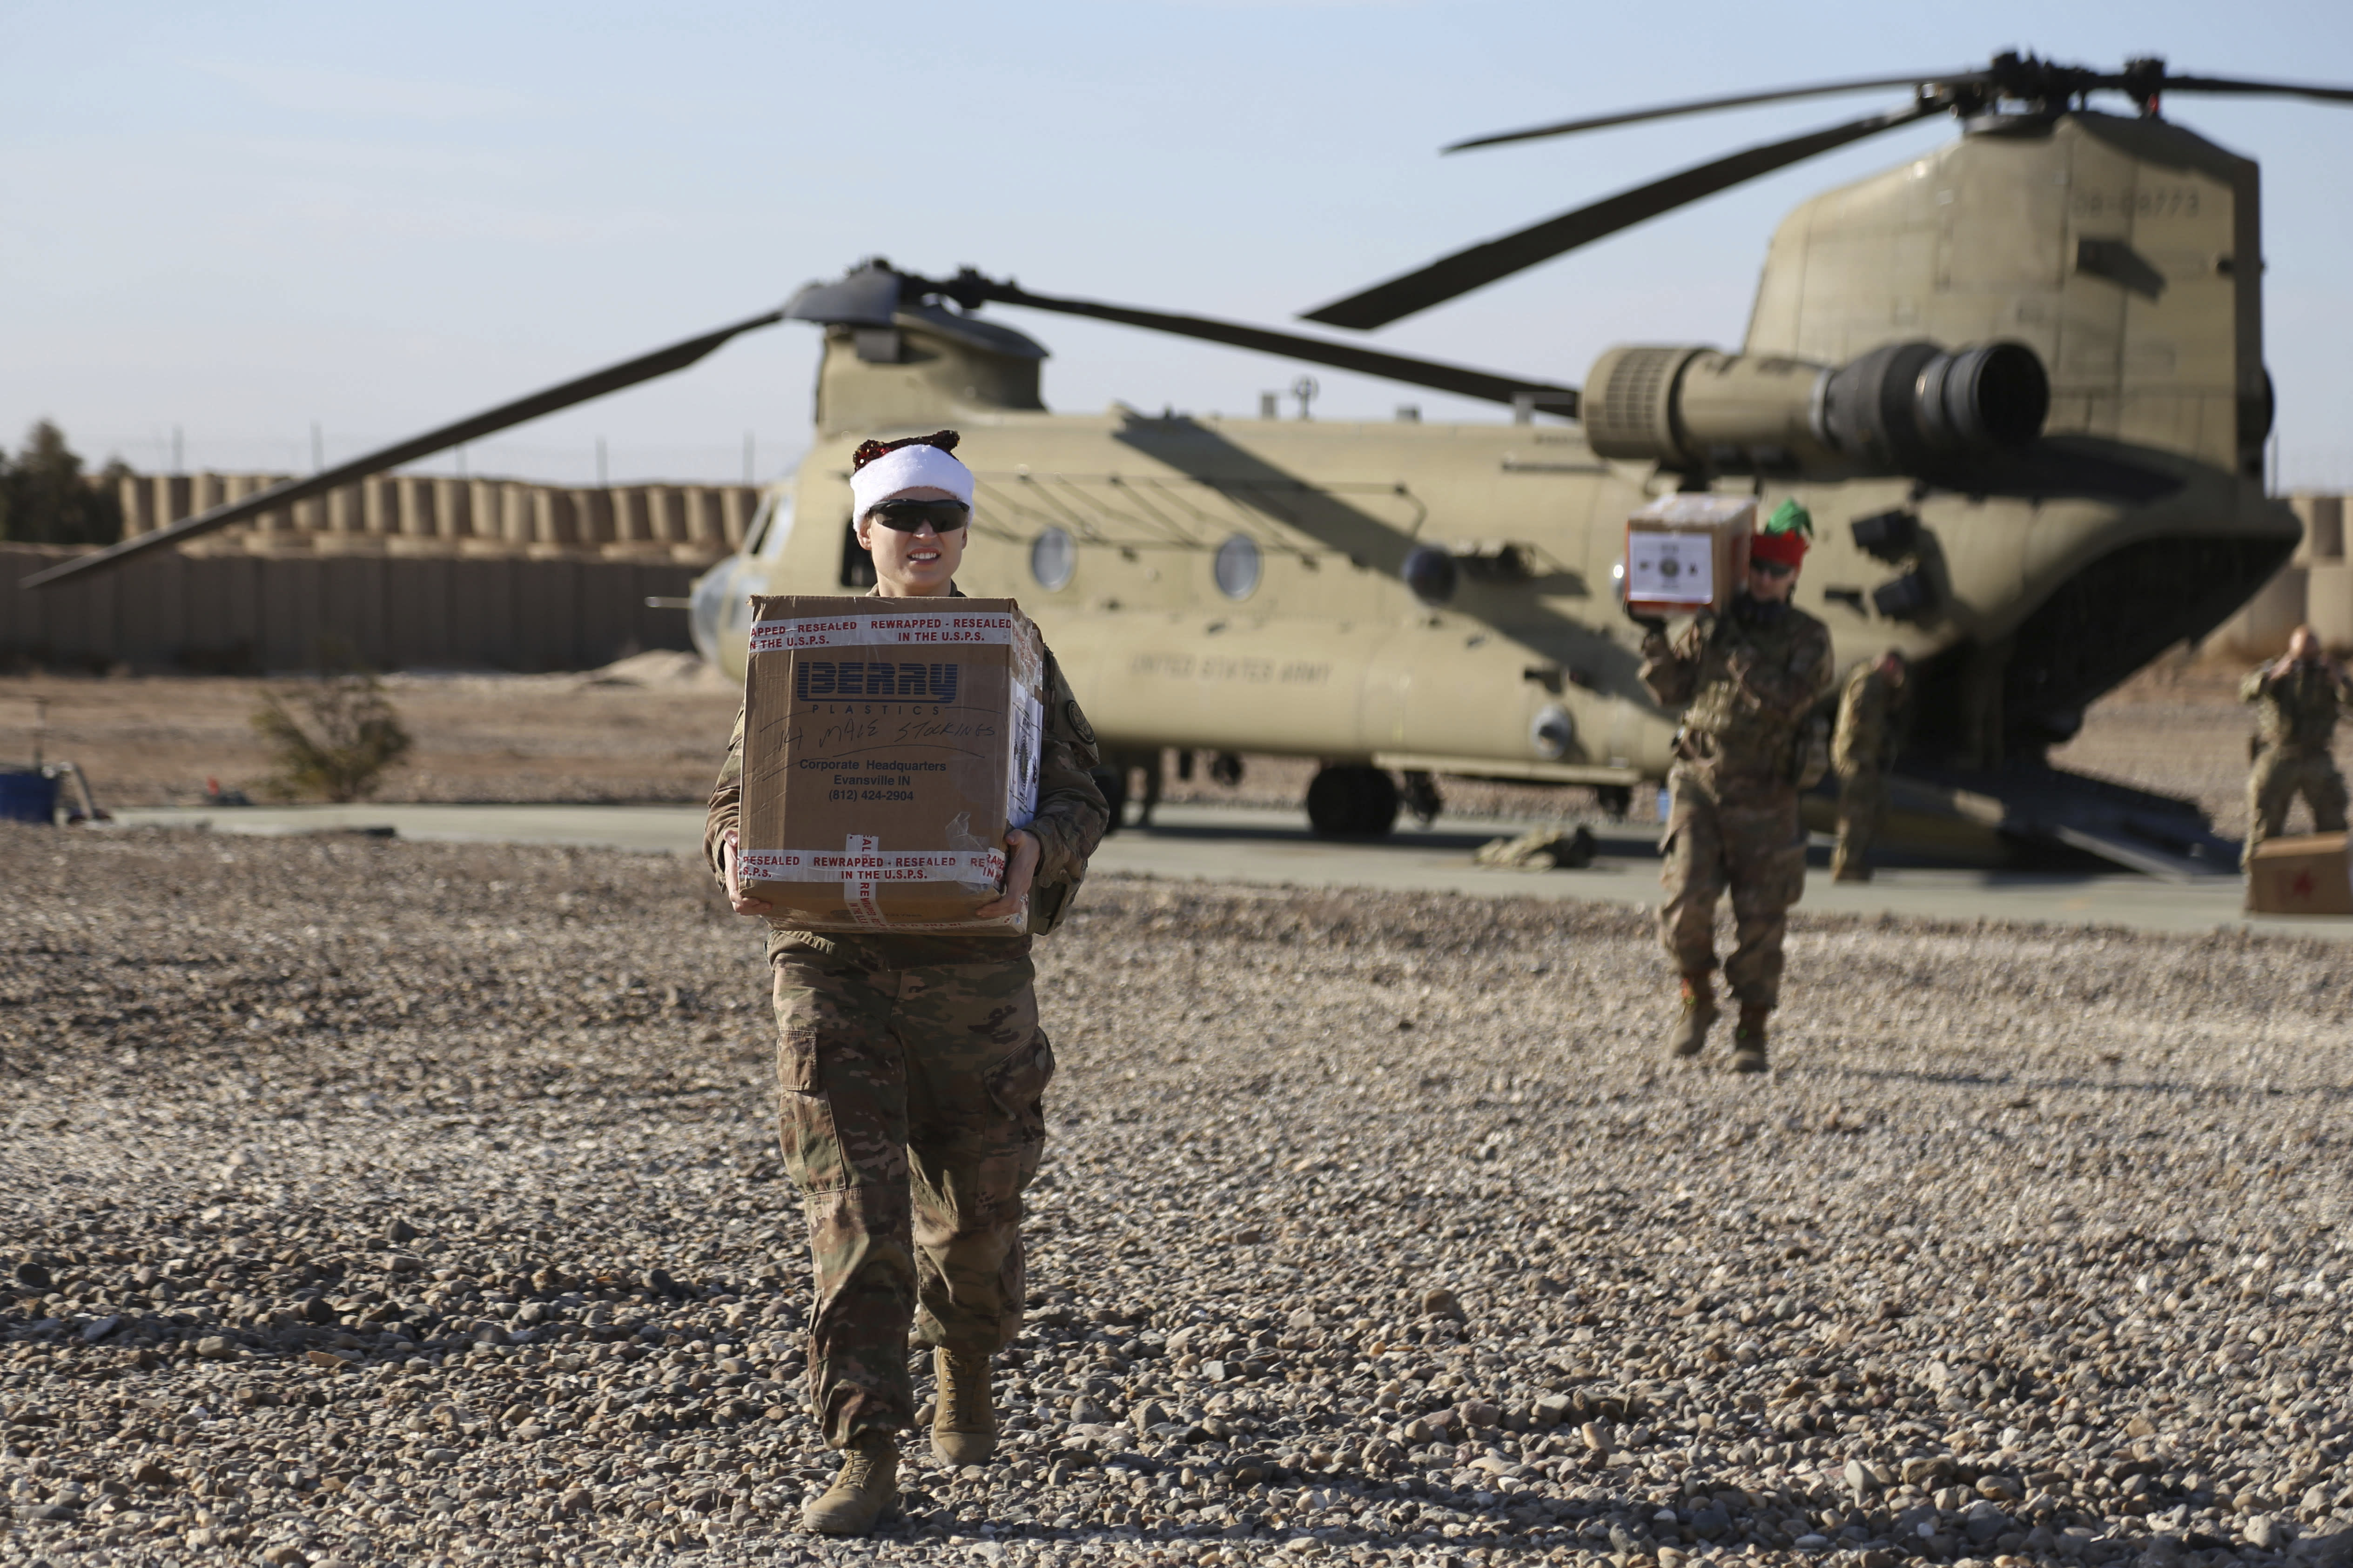 In this Tuesday, Dec. 24, 2019, photo, U.S. service members deliver Christmas gifts to their comrades on a base near the al-Omar oilfield in eastern Syria. It's an operation is called Holiday Express - in addition to delivering presents, the U.S.-led coalition forces brought a U.S. military band to play Christmas carols and music to several bases in eastern Syria. (AP Photo/Farid Abdul-Wahid)